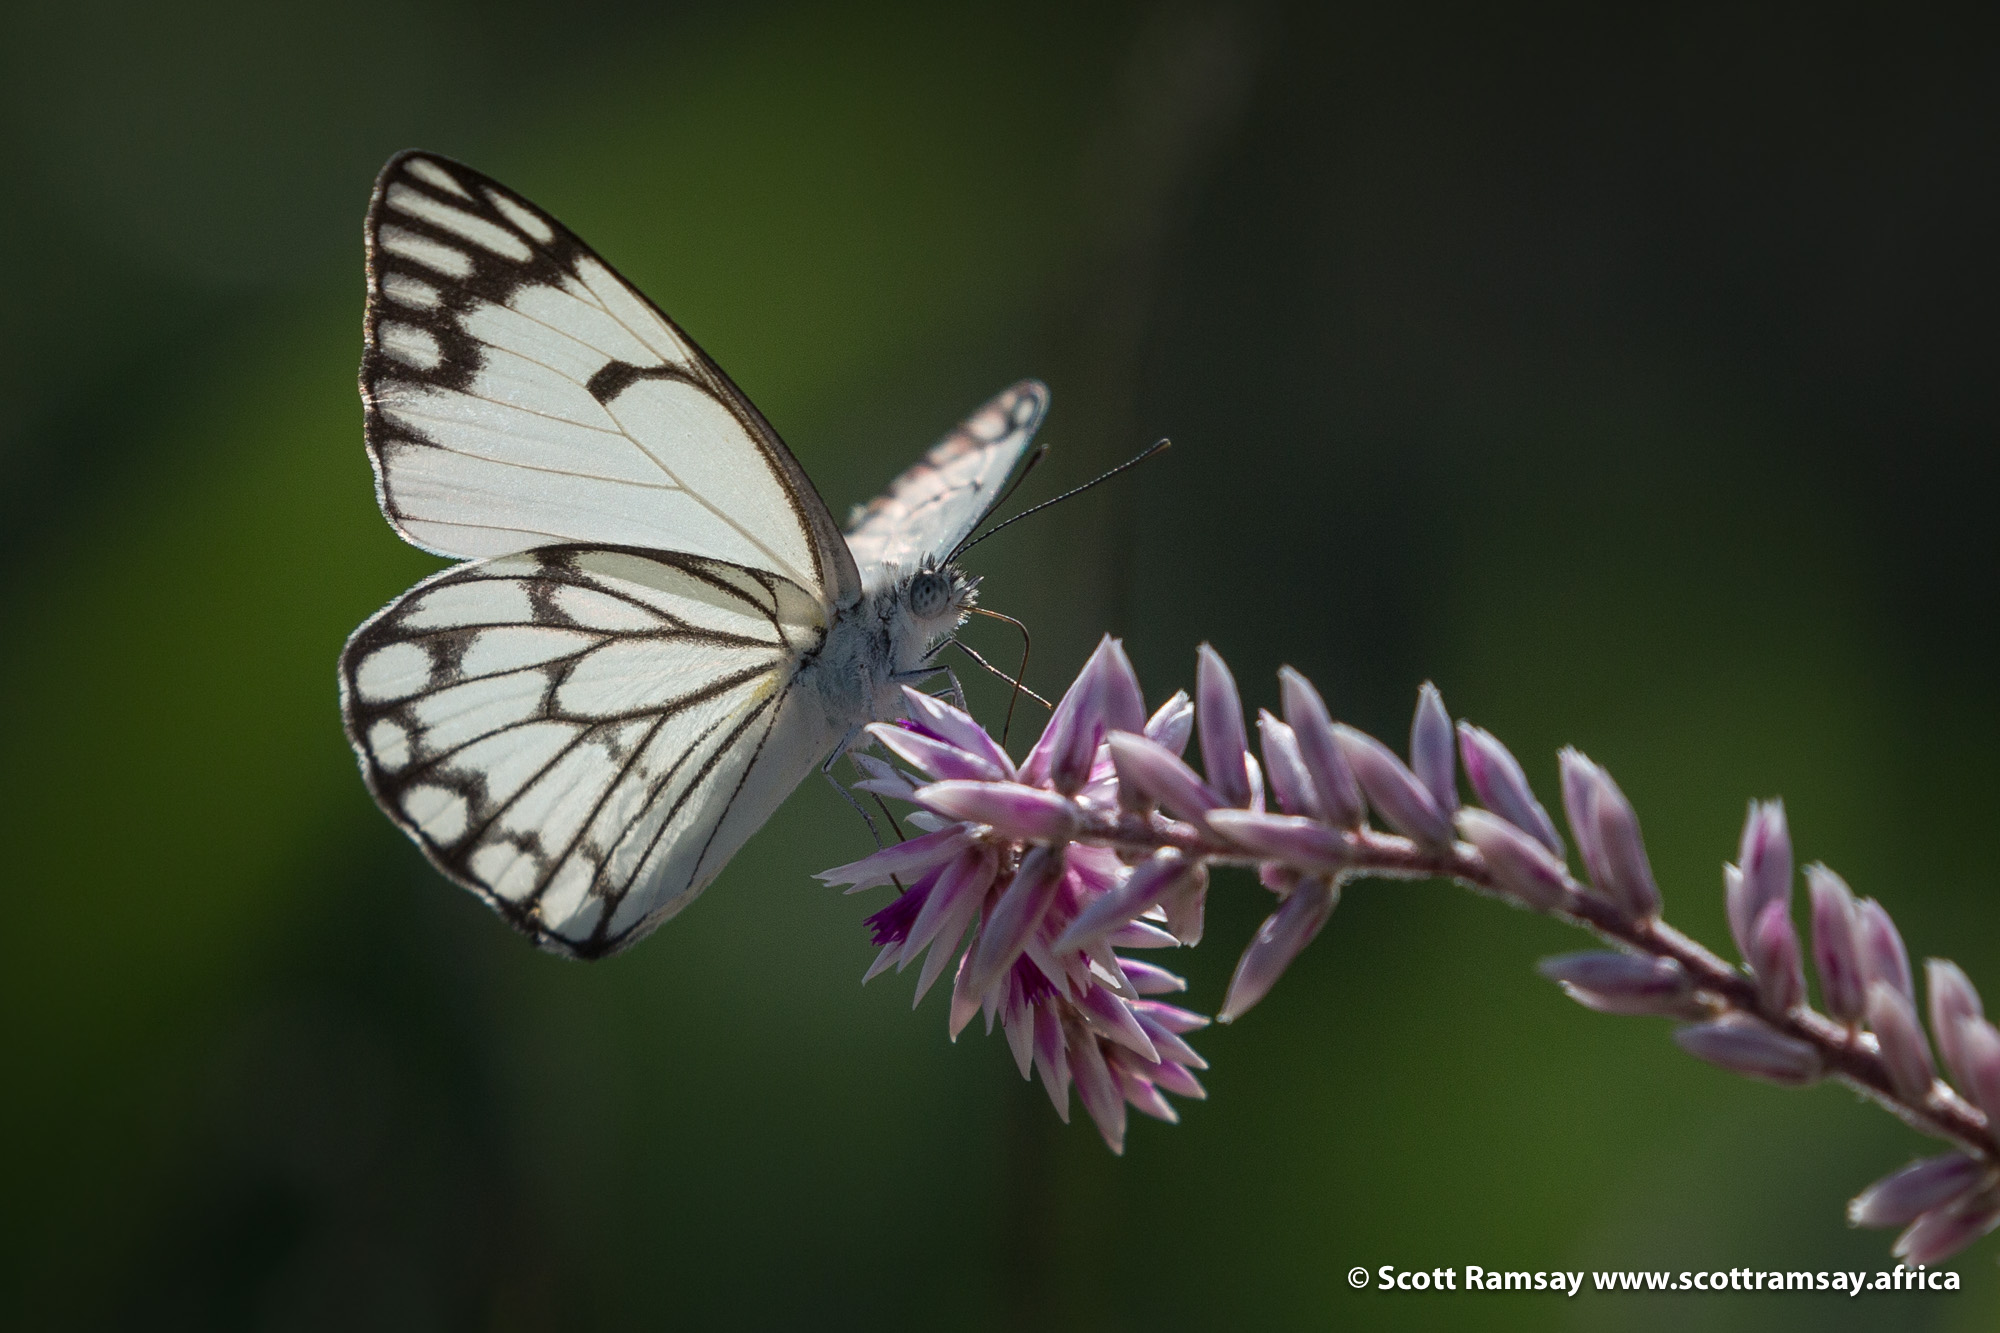 One more butterfly image...brown-veined white using it's proboscis to search for nectar in a cat's tail flower (Hermbstaedtia fleckii).